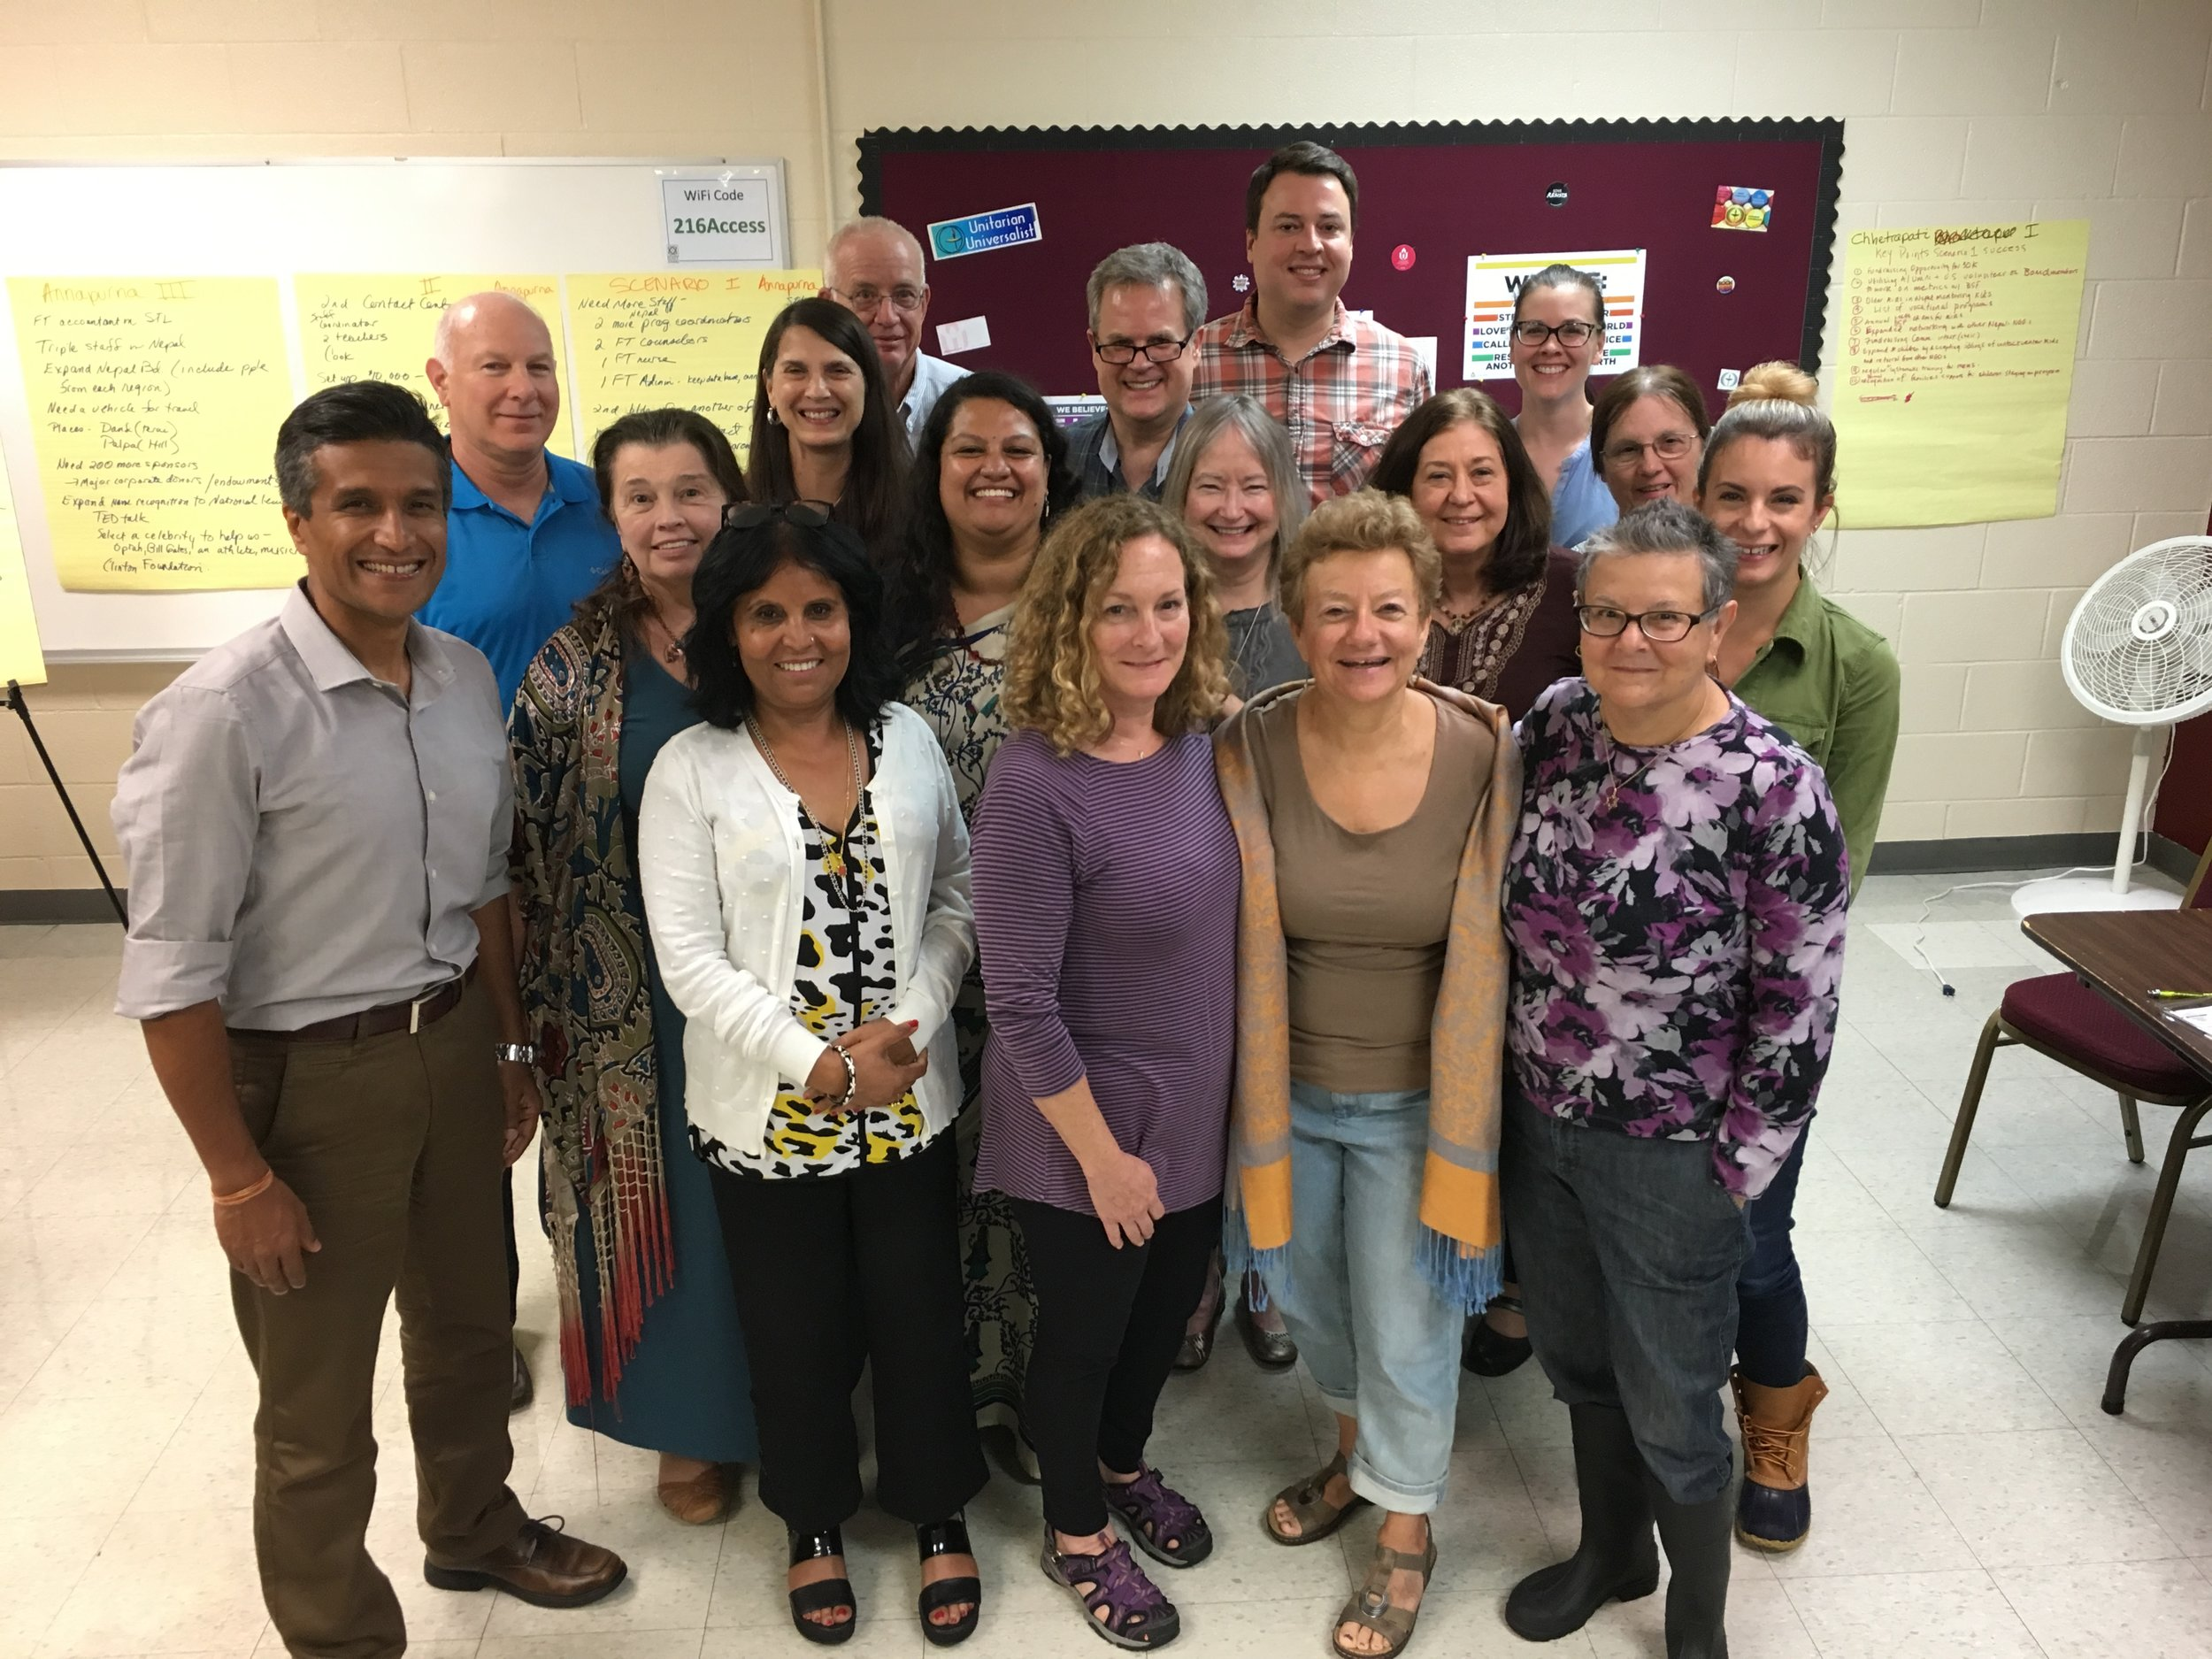 Mitrata Nepal Foundation for Children Board of Directors with Leena and Yogesh at Strategic Planning in St. Louis, MO